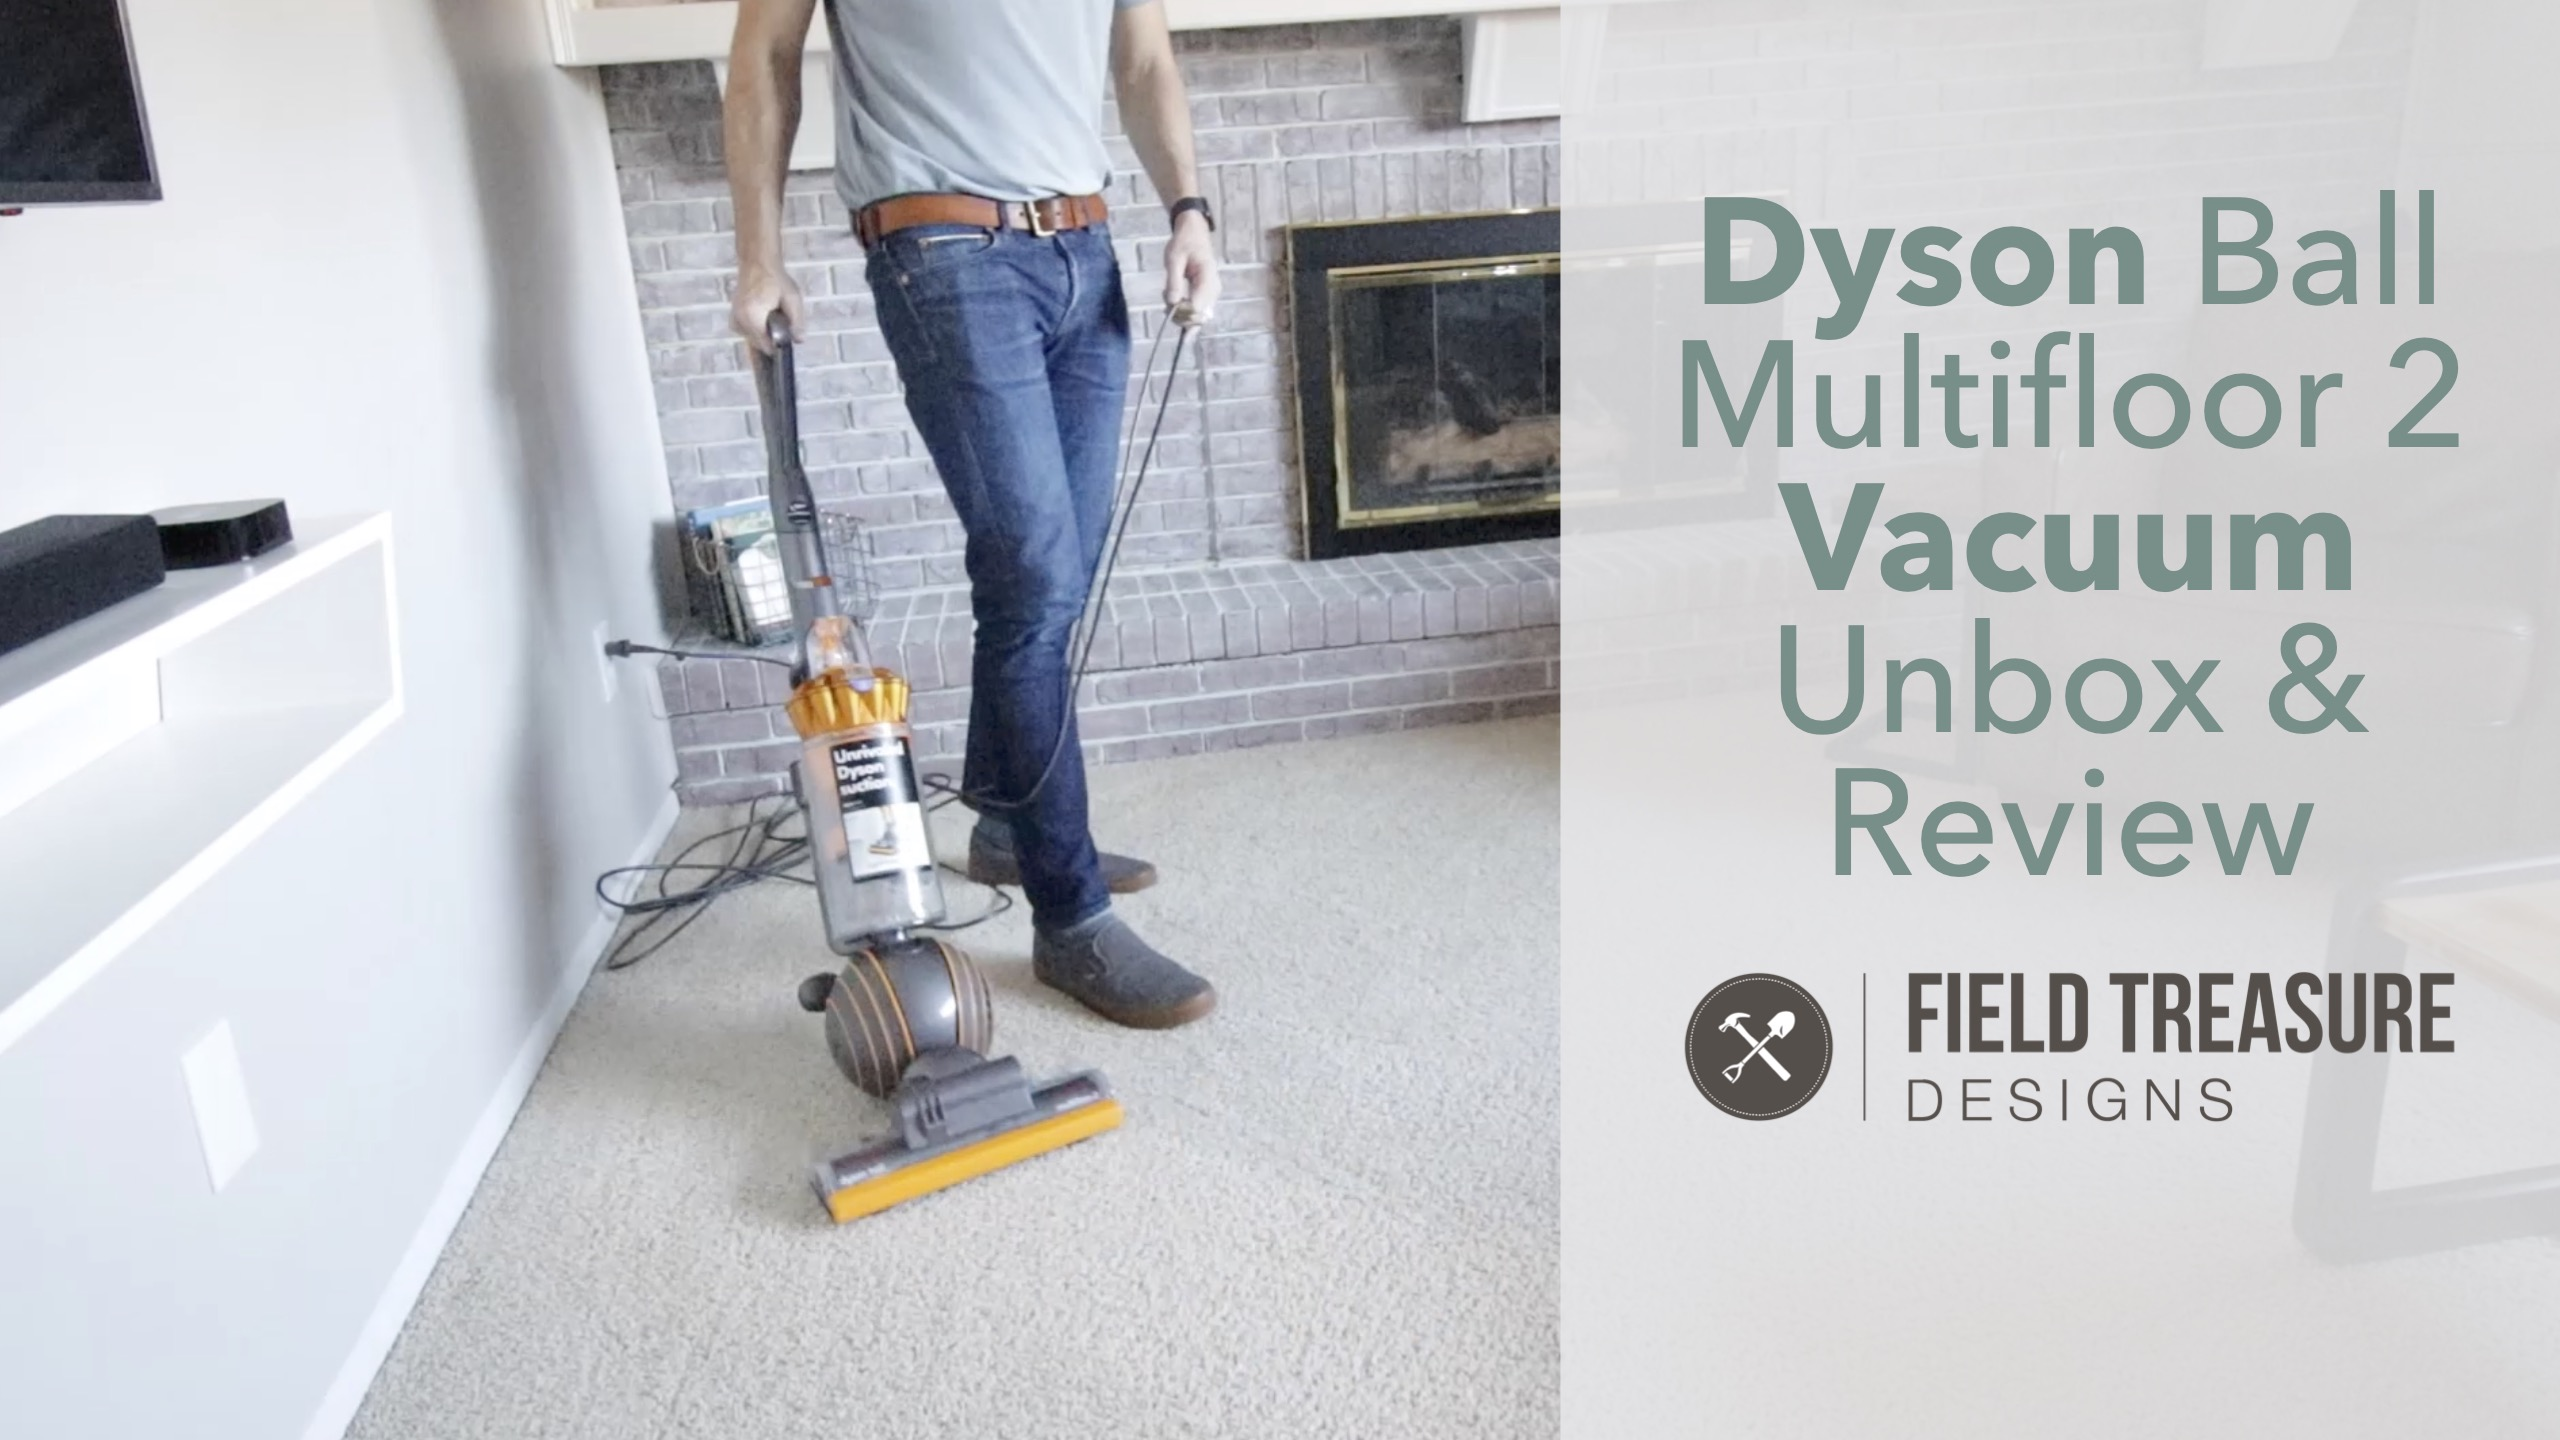 Dyson Ball Multifloor 2 Vacuum Unbox & Review